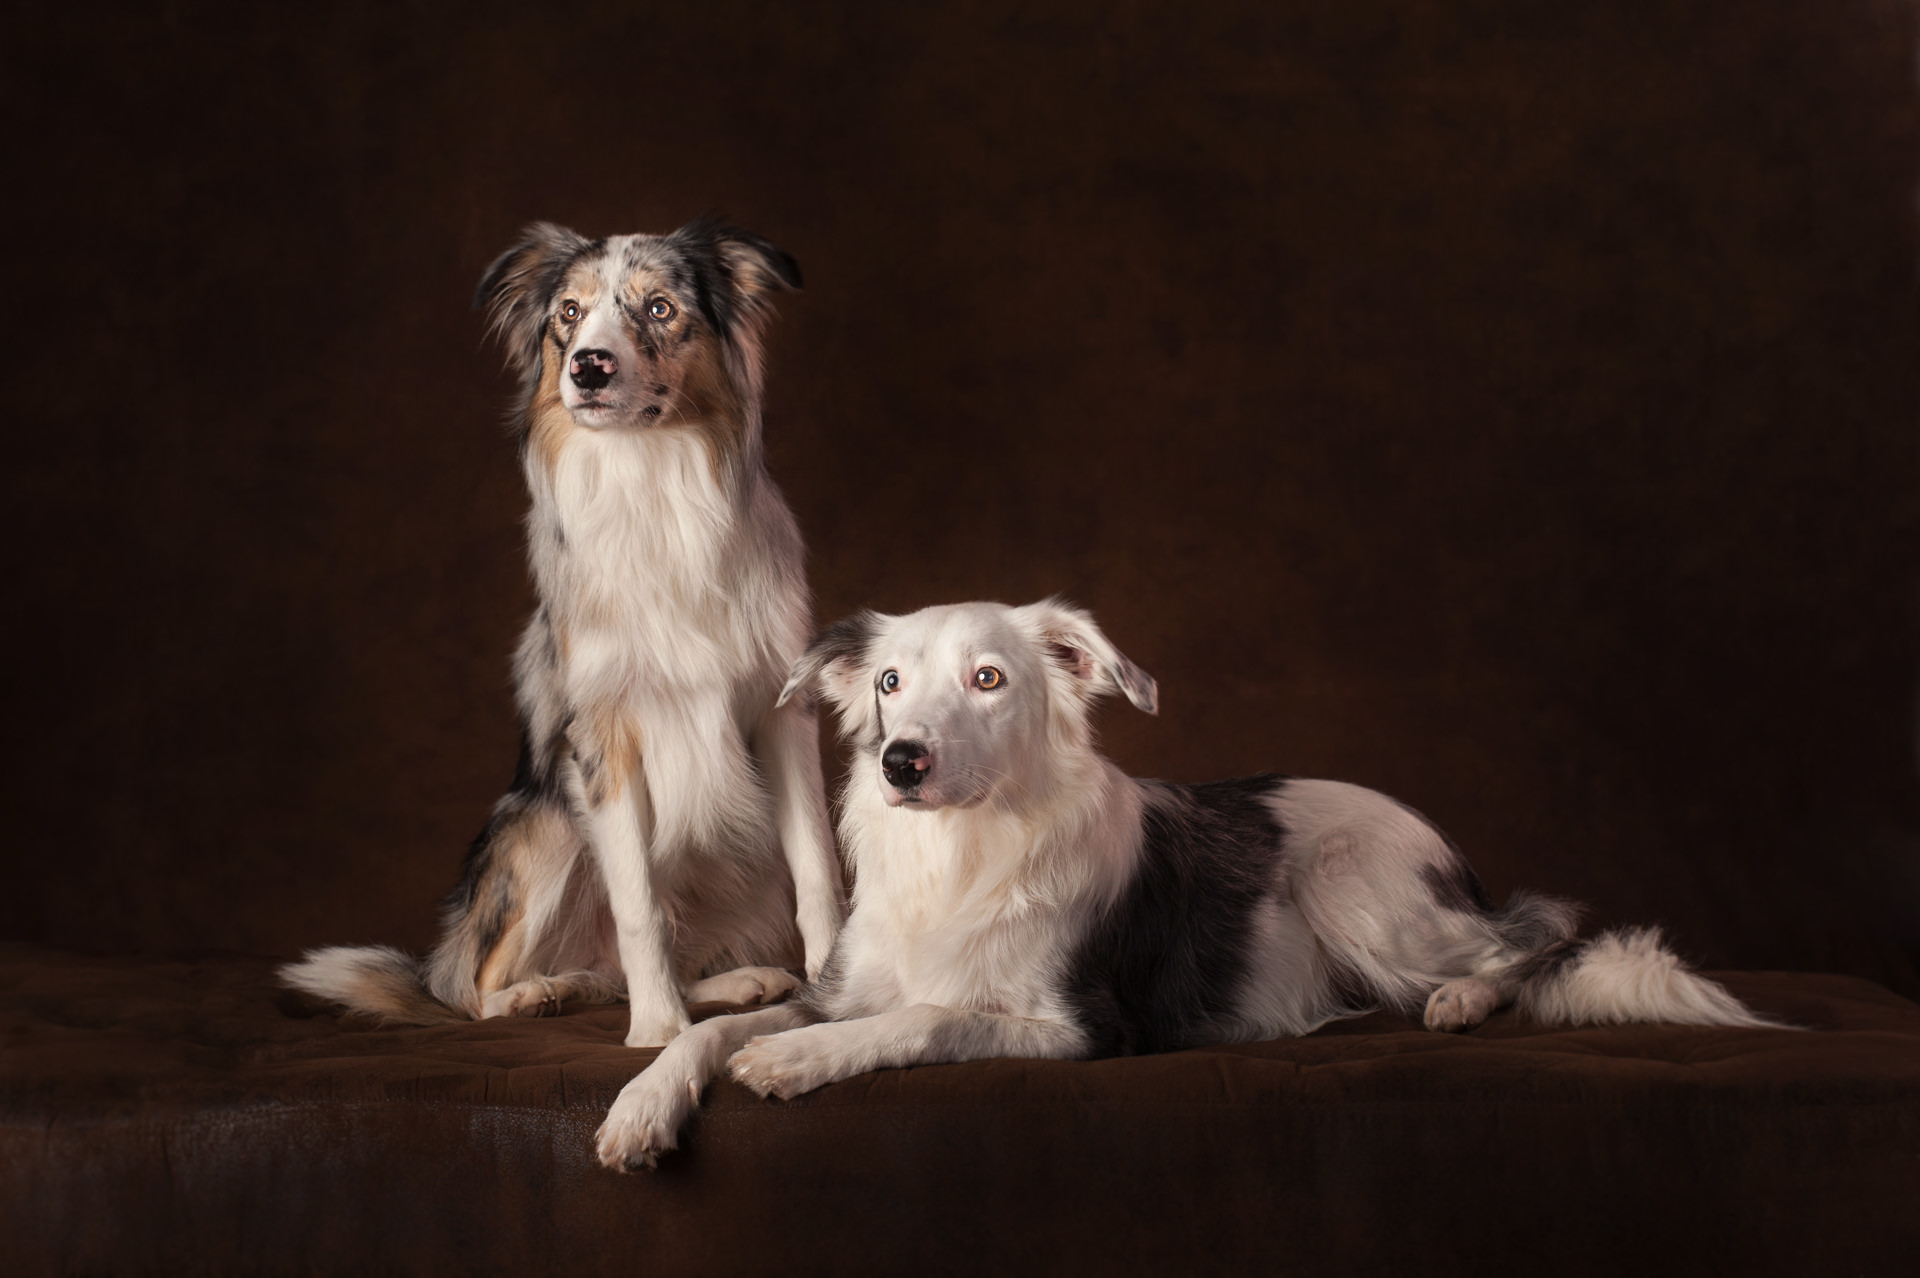 The-Artful-Dog-Studio-Dog-Photographer-2-1